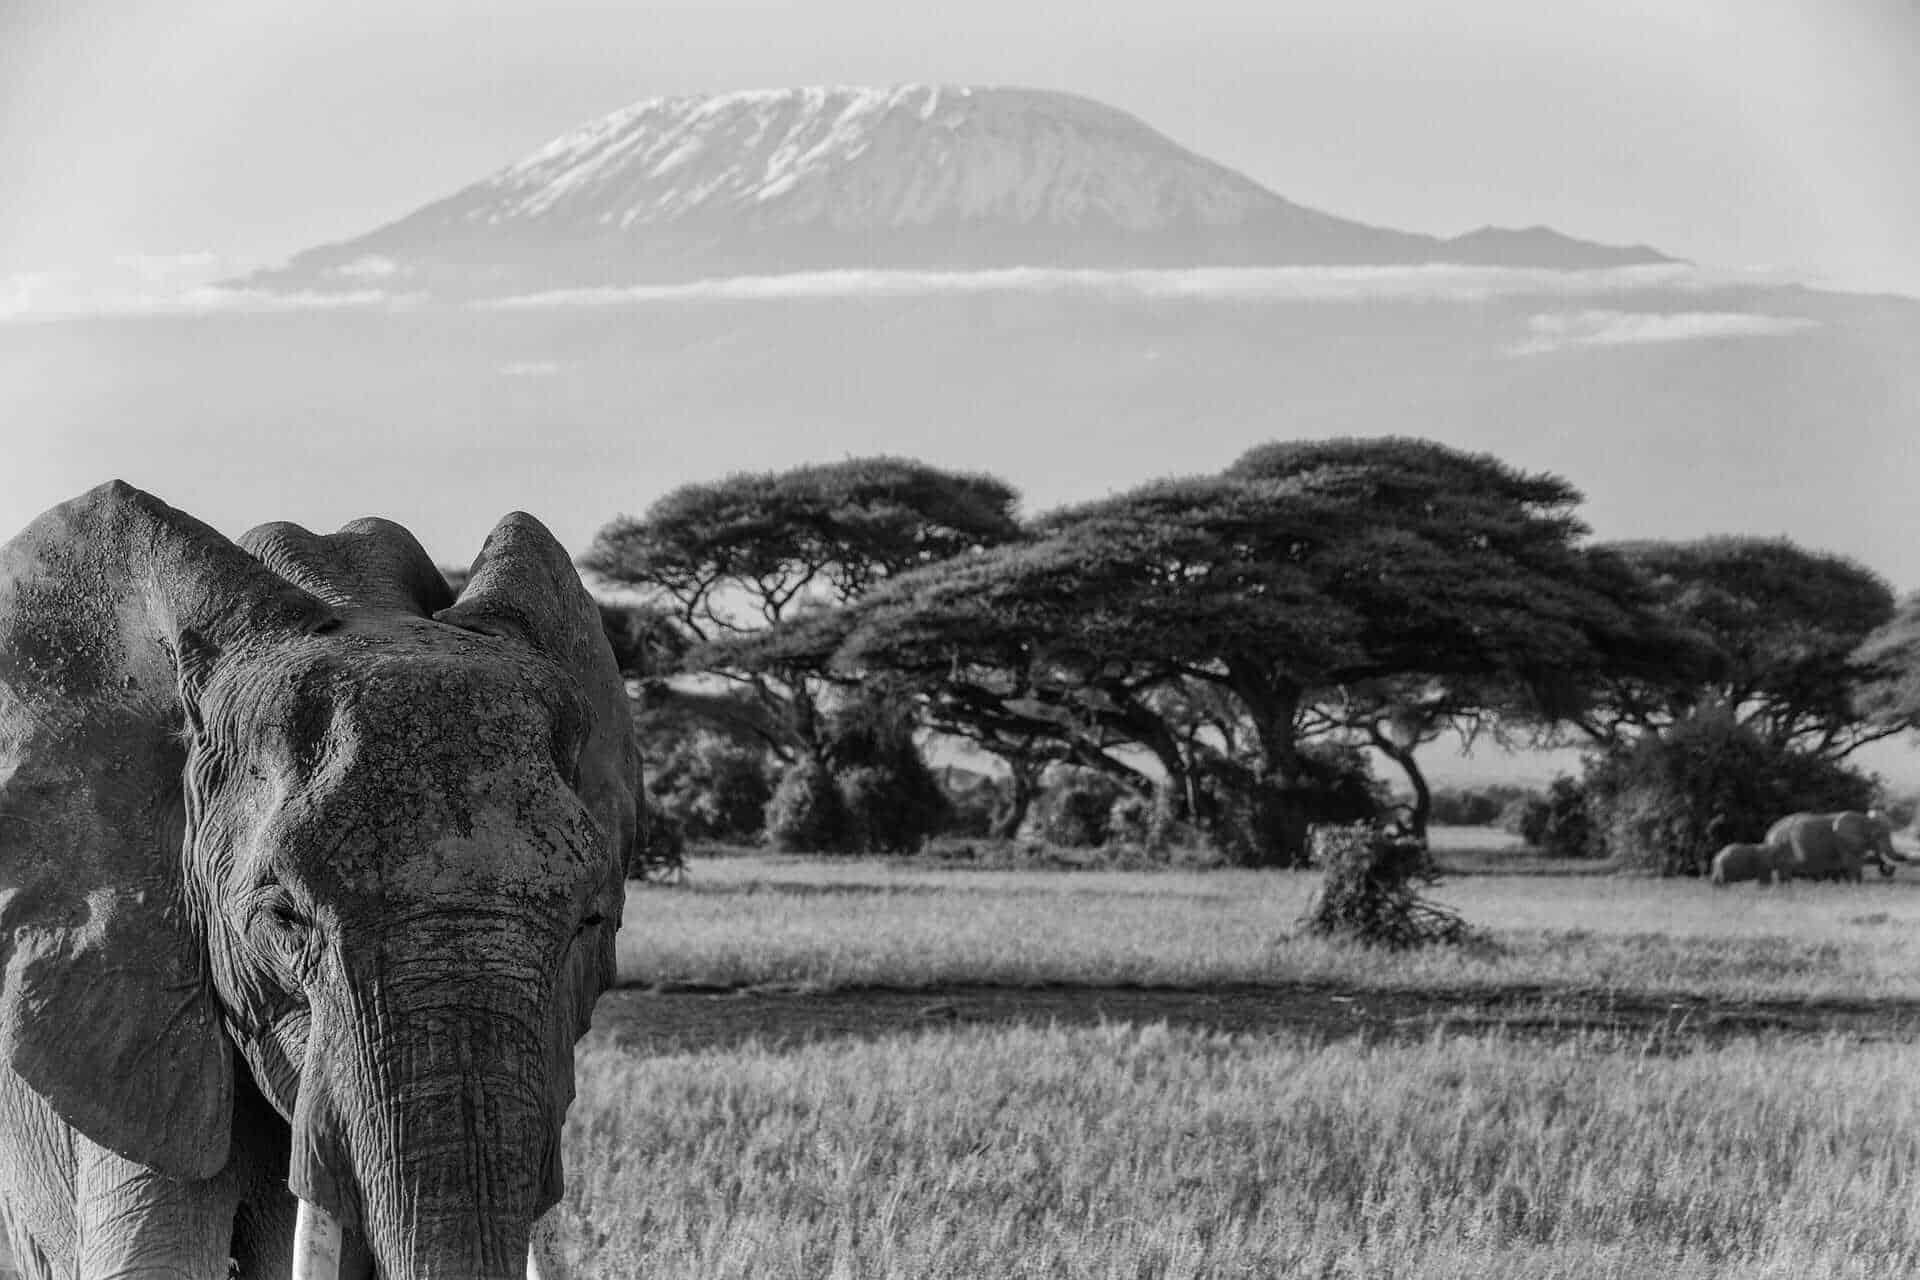 Elephant in front of Mount Kilimanjaro